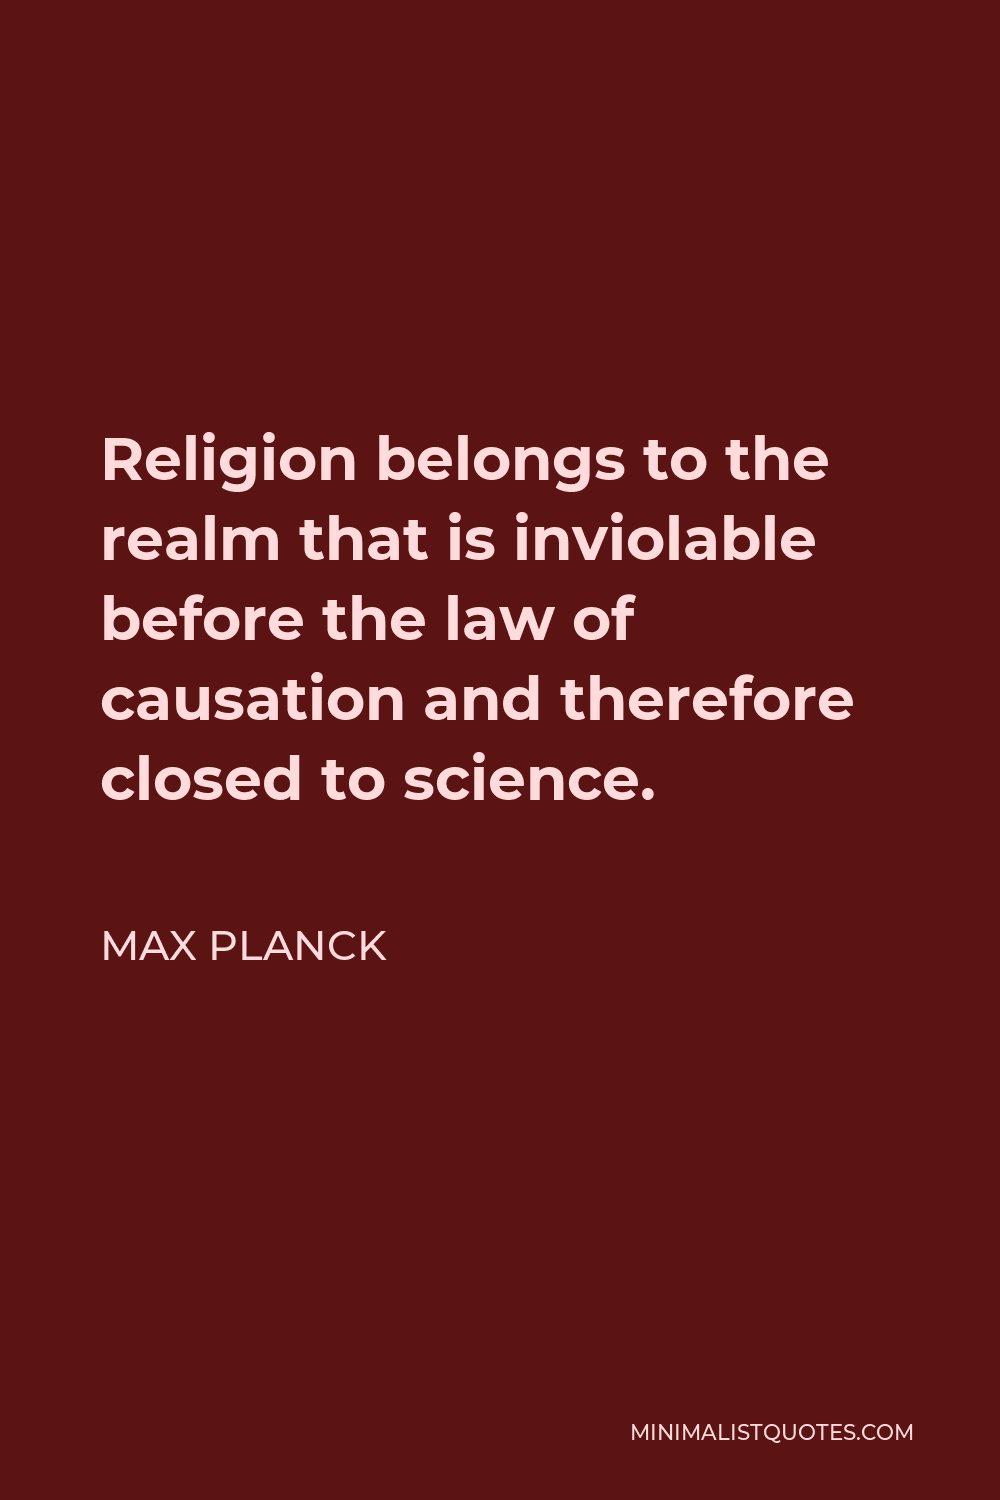 Max Planck Quote - Religion belongs to the realm that is inviolable before the law of causation and therefore closed to science.